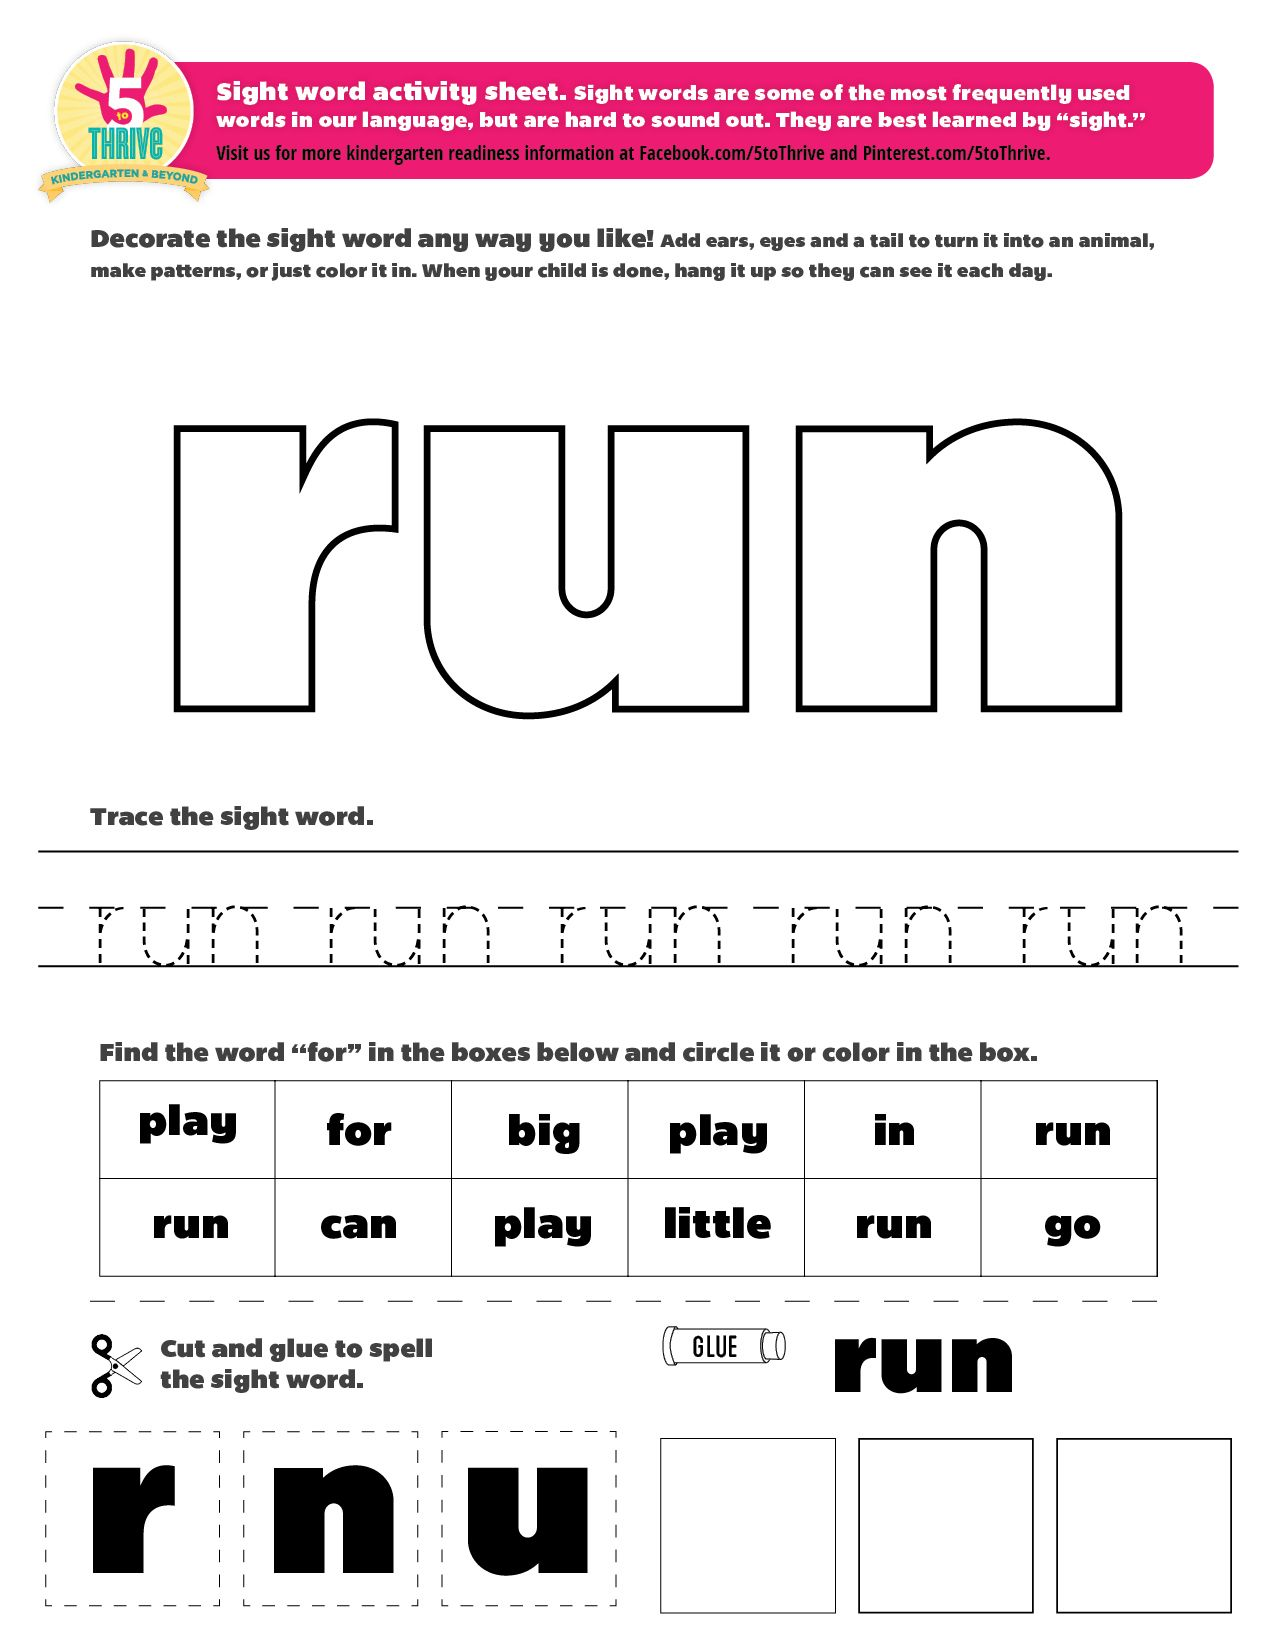 Run Crm Worksheet